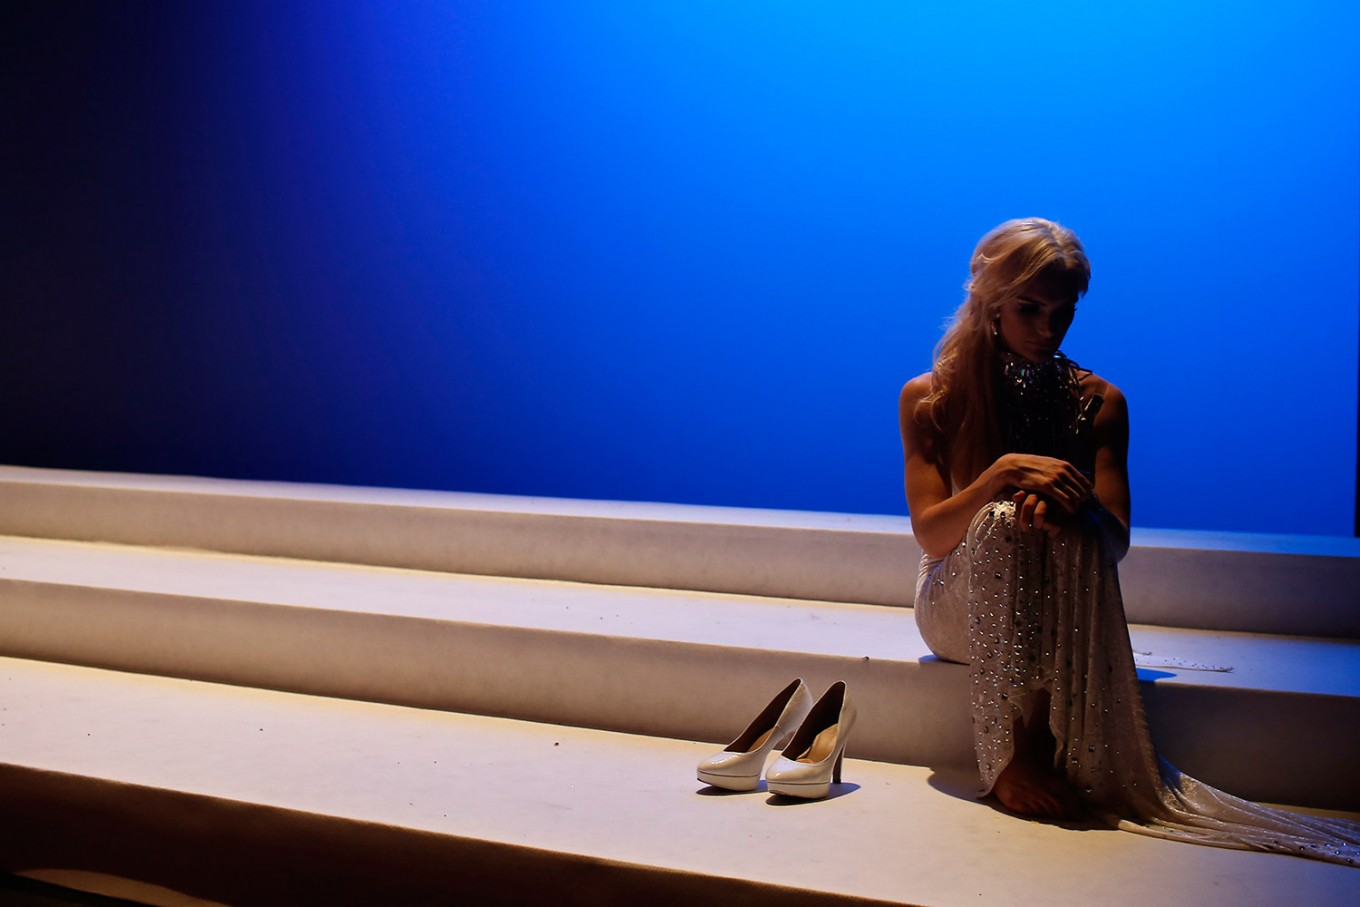 In this Sunday, Sept. 18, 2016 photo, Linni Rows Wiman, from Sweden, sits on the stage during an interval in the Miss Trans Star International 2016 show celebrated in Barcelona, Spain. Twenty-eight women representing as many countries competed last weekend to be crowned  Miss Trans Star International, Europe's largest beauty pageant for transgender women and one of a growing number of similar events aimed at celebrating a population more often condemned.